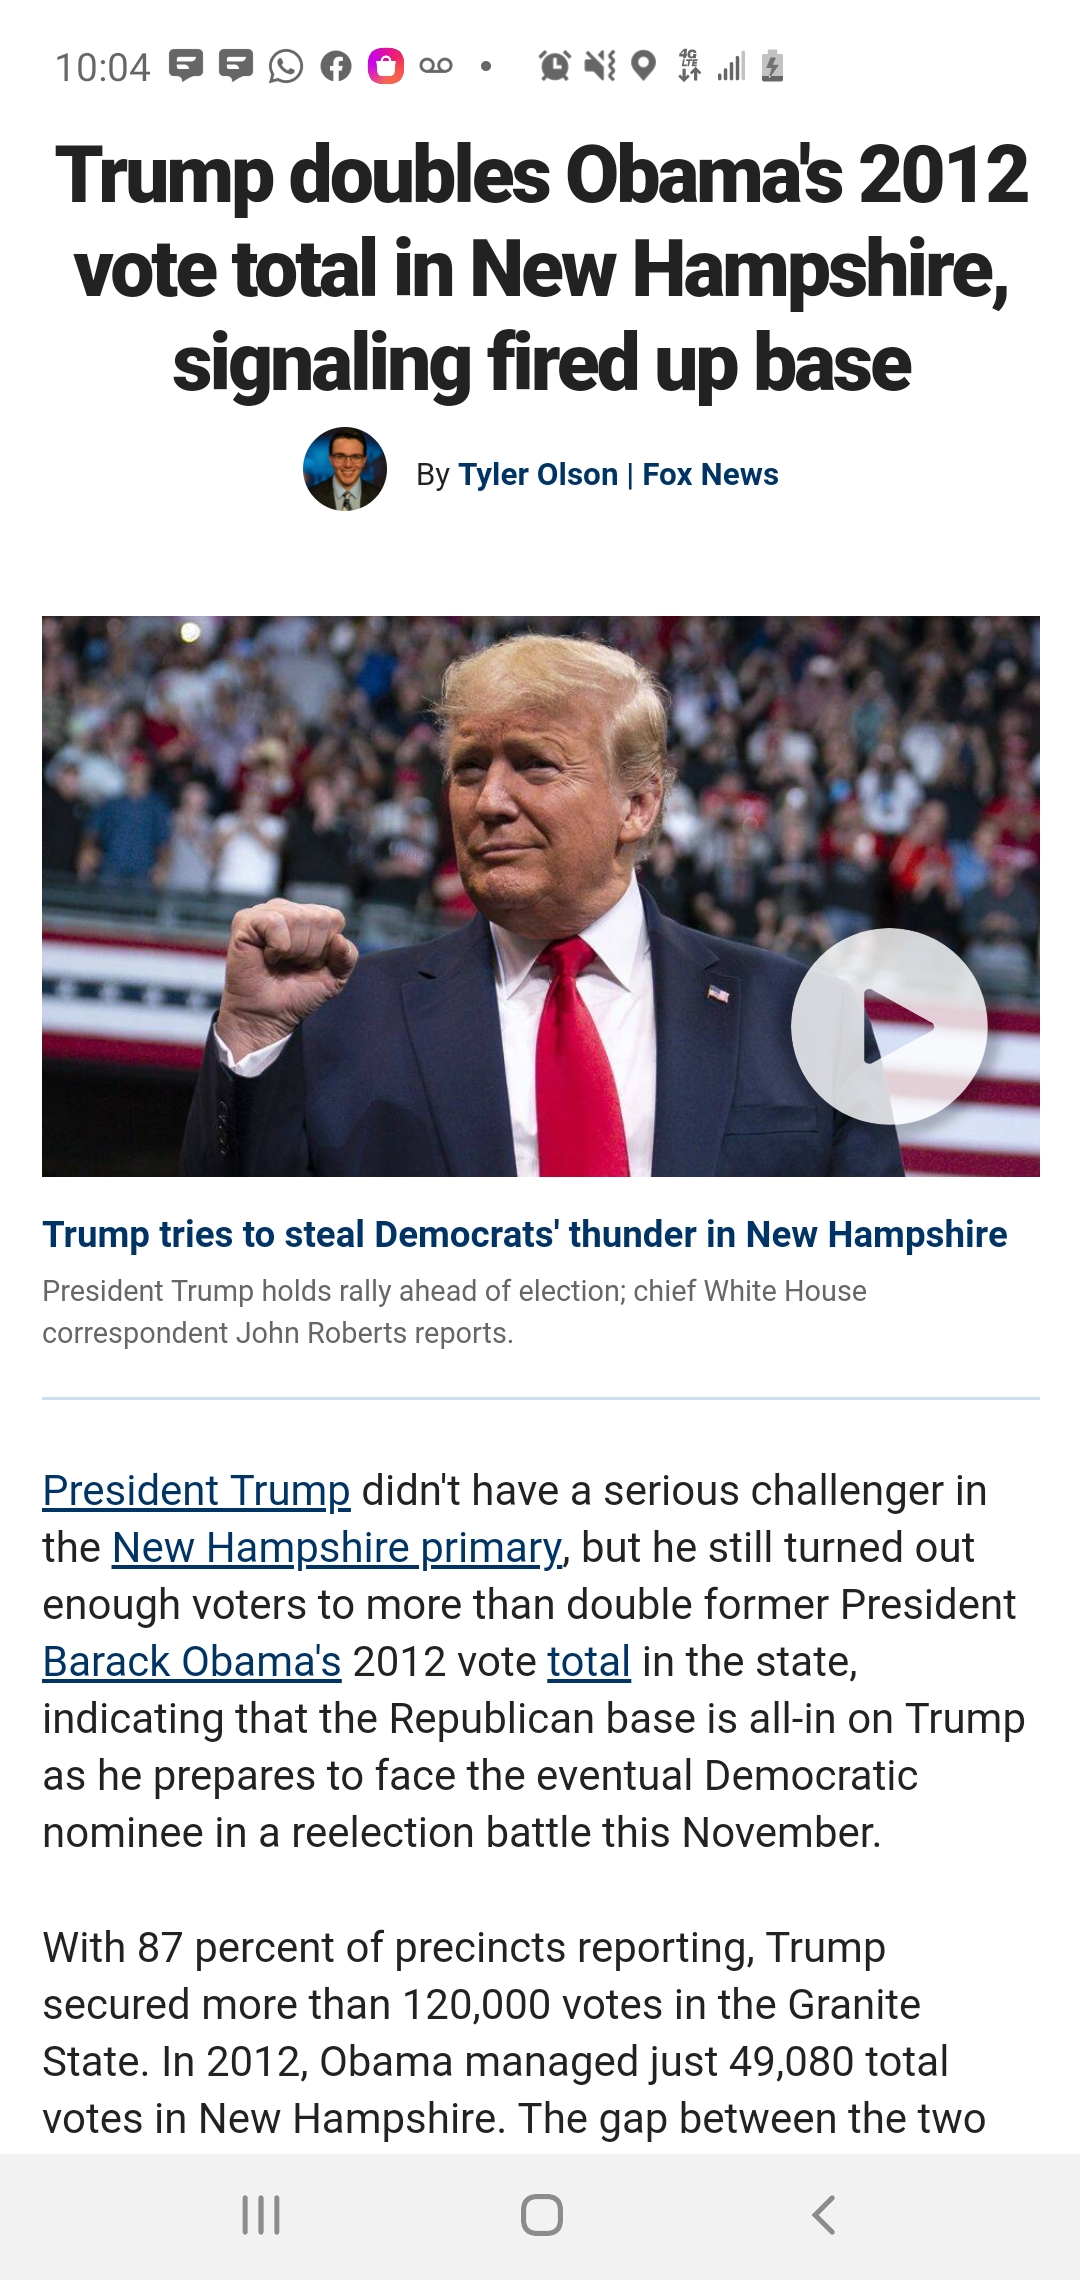 With 87 percent of precincts reporting, Trump secured more than 120,000 votes in the Granite State. In 2012, Obama managed just 49,080 total votes in New Hampshire. Thegap between the two presidentsis likely to increase as more precincts report their totals Wednesday.